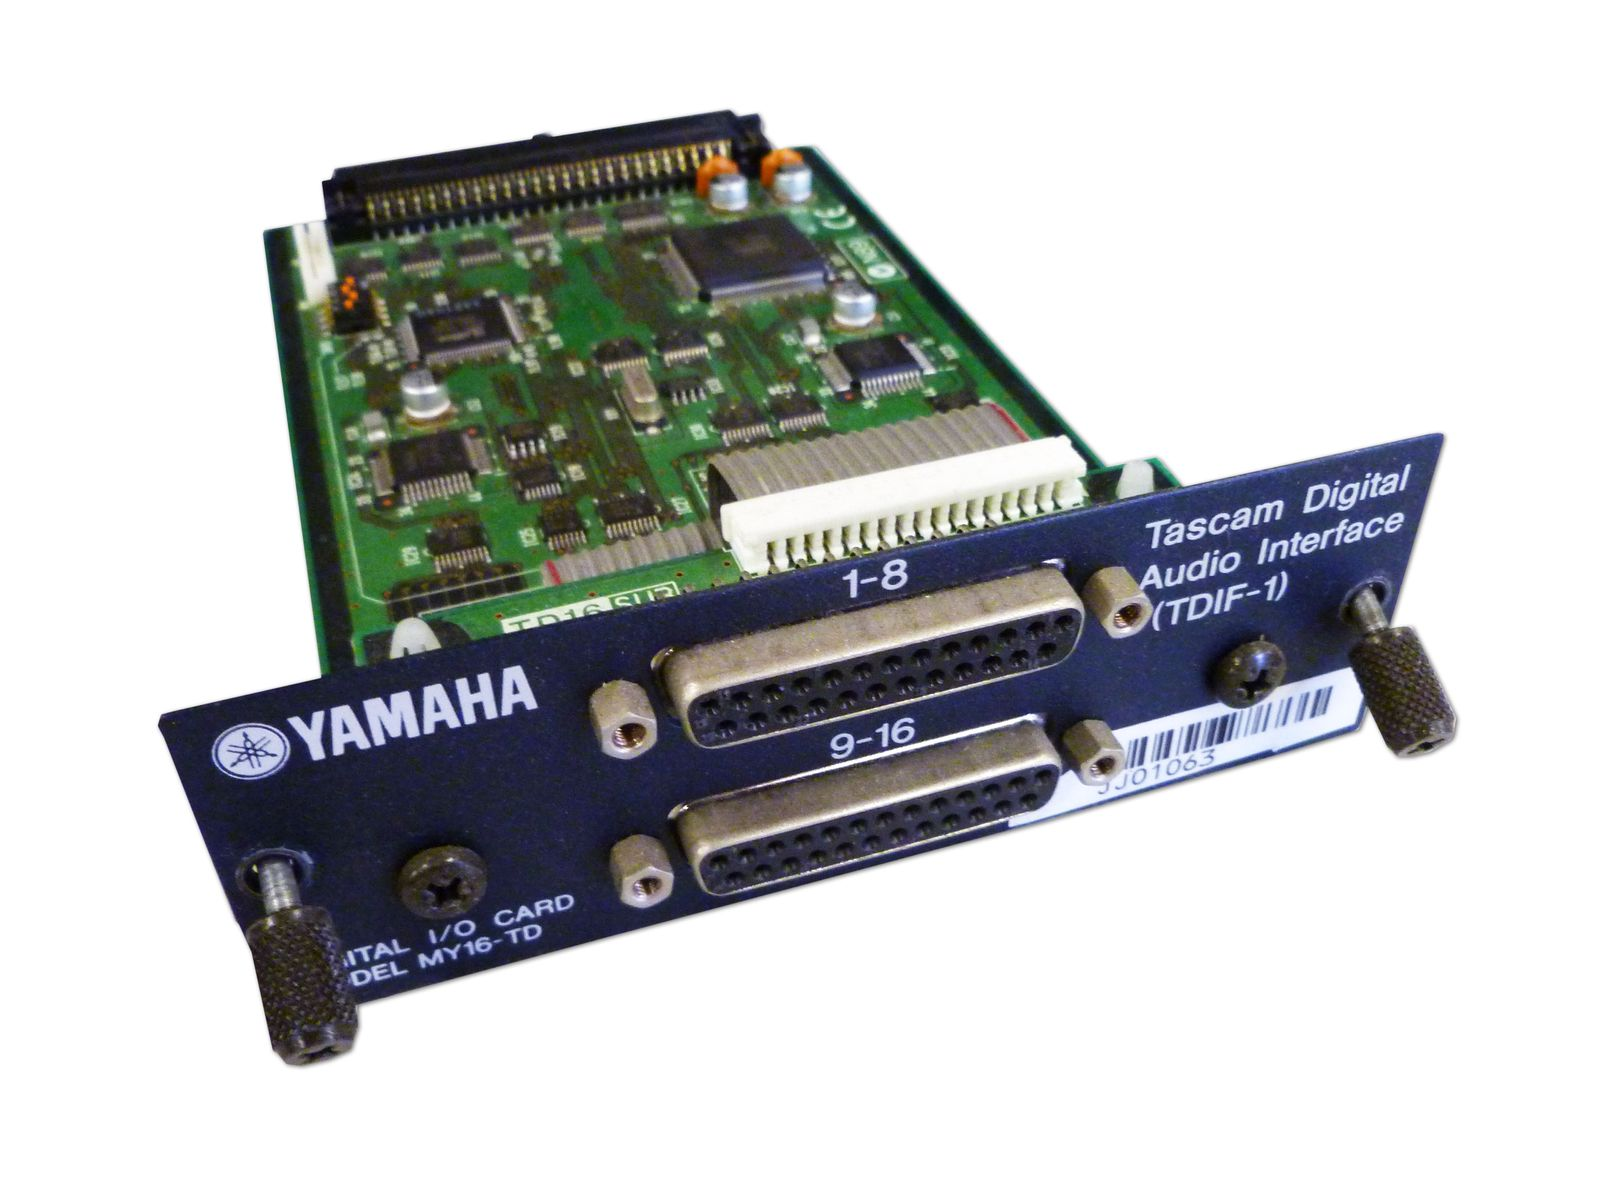 The Yamaha Model MY16-TD 16-Channel TDIF-1 Format I/O card is available at Hollywood Sound Systems.